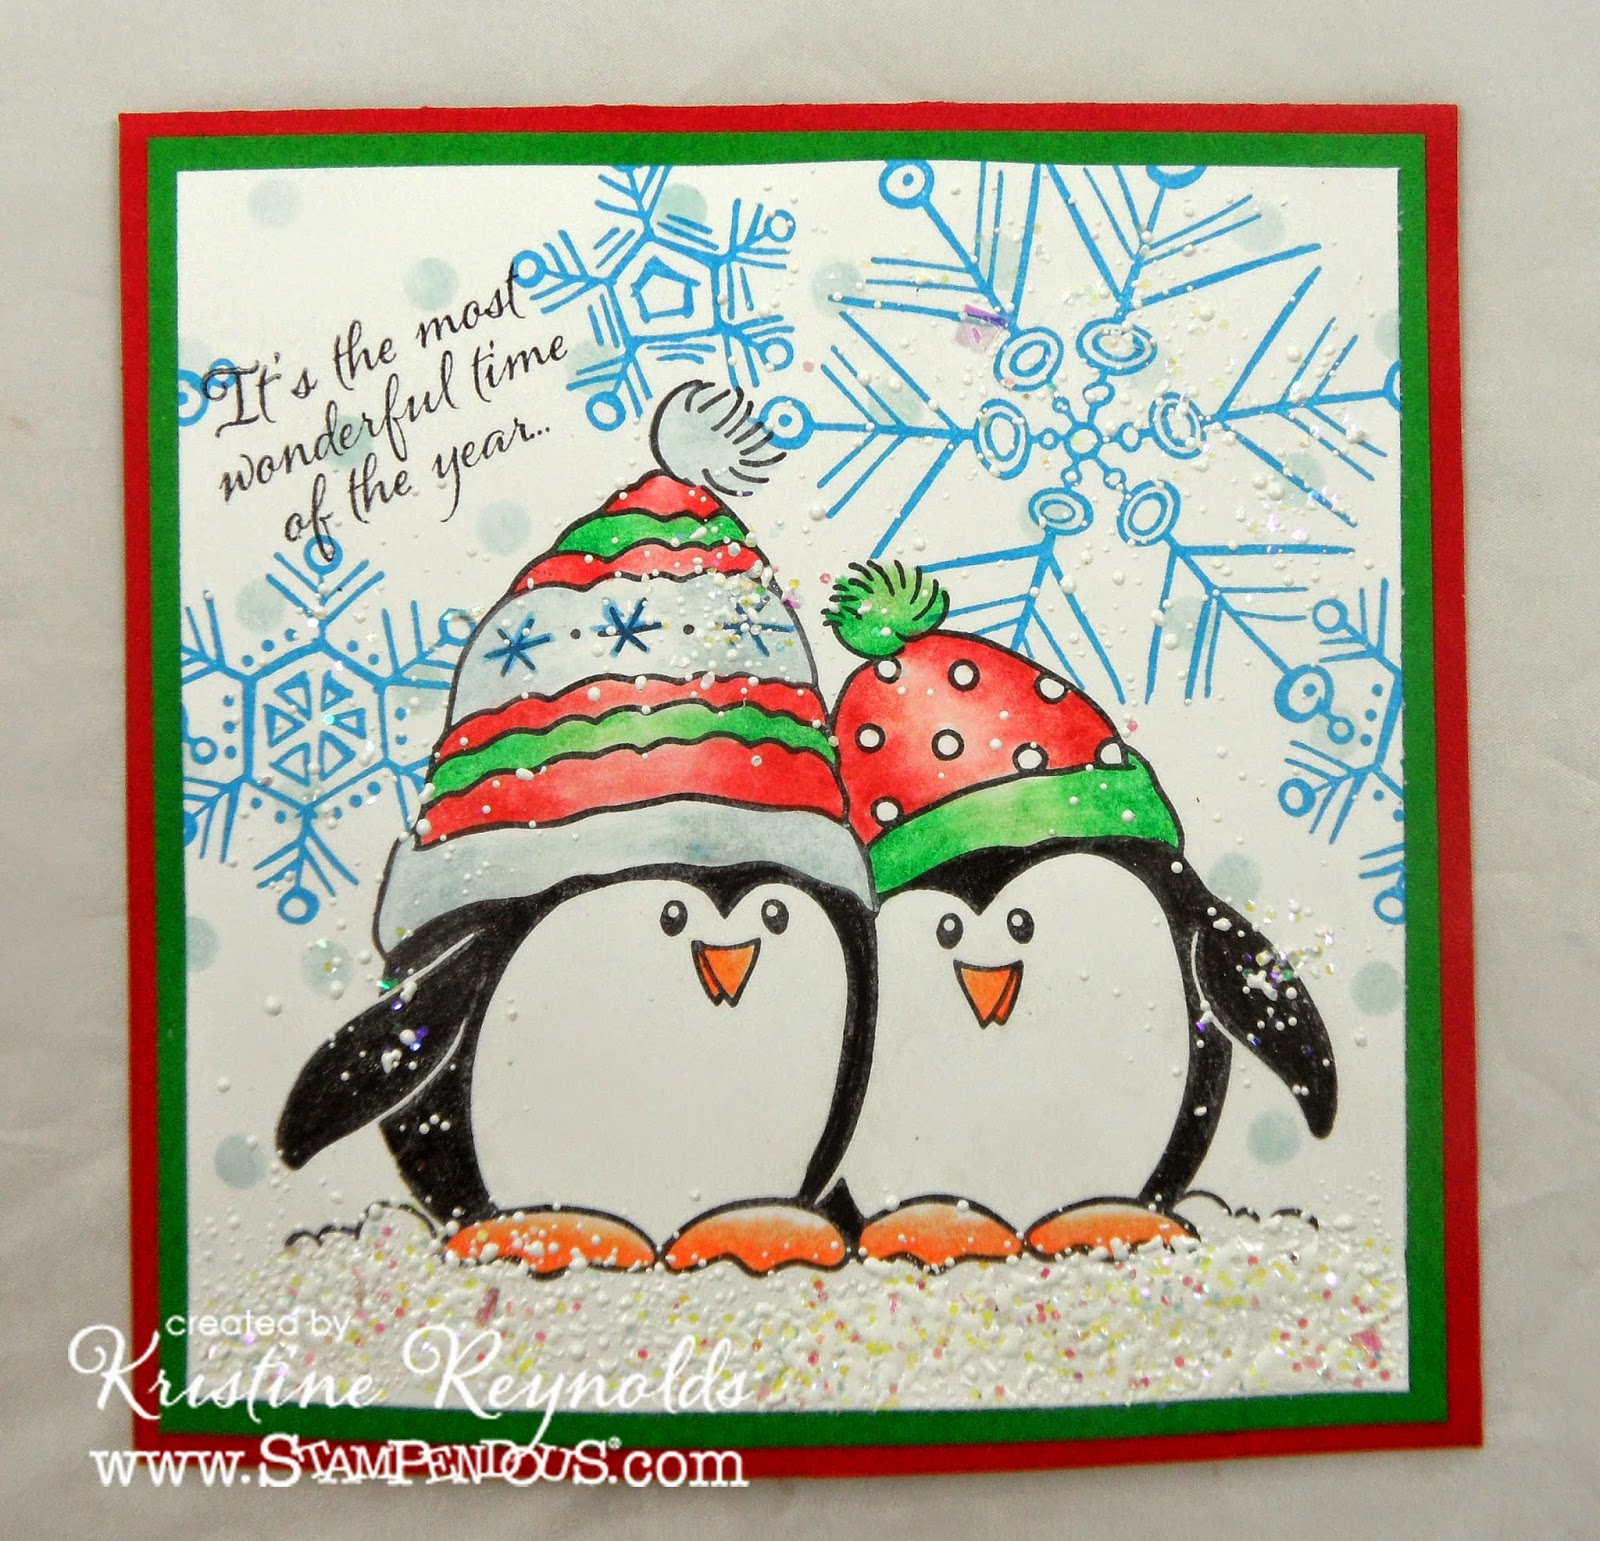 Stamping & Scrapping In California: More CAS Christmas